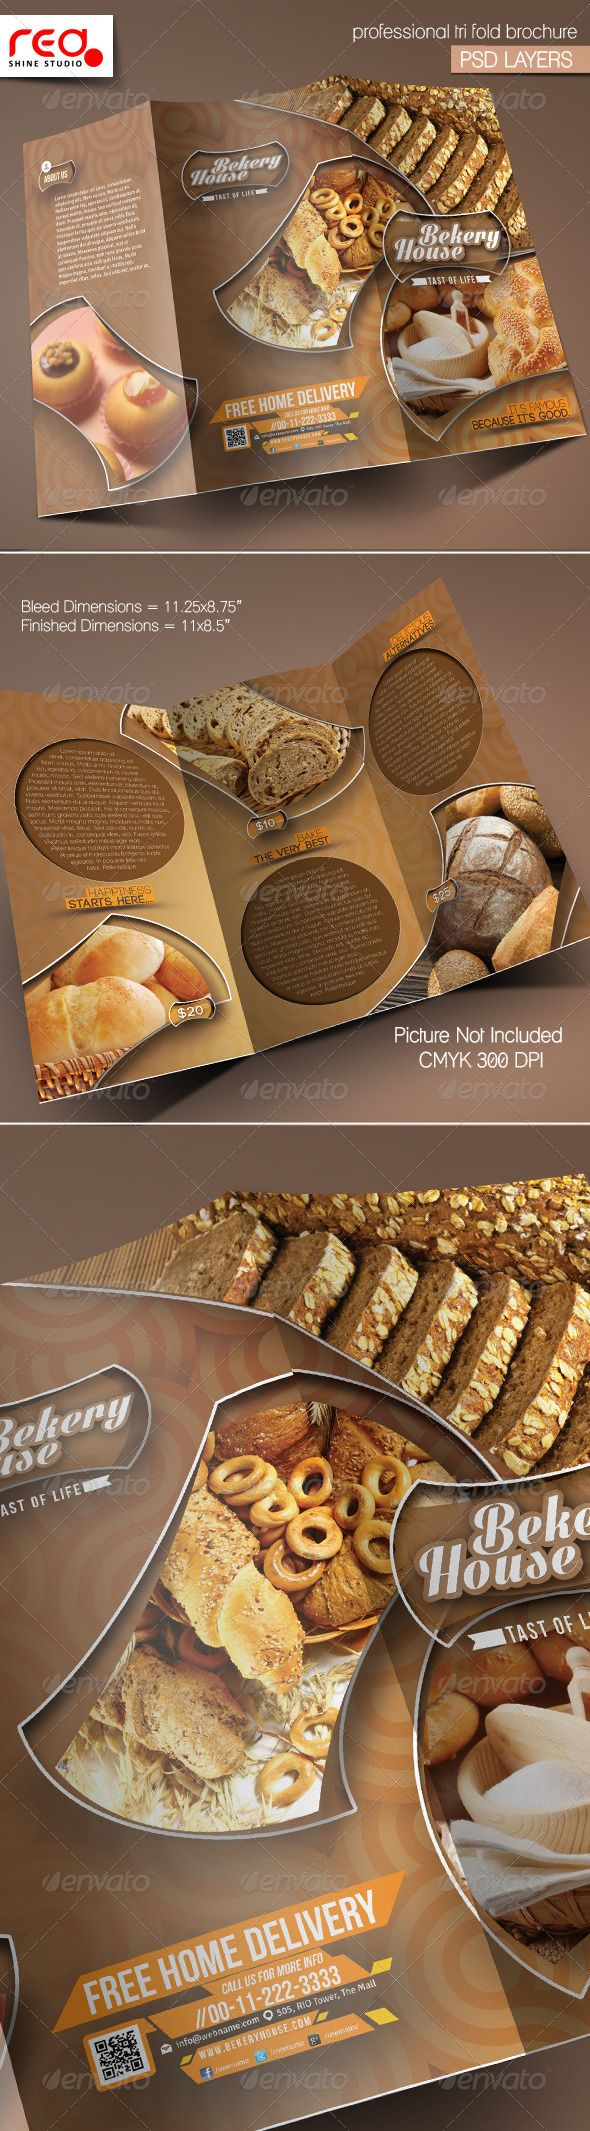 Bekery House Trifold Brochure Template - Corporate Brochures